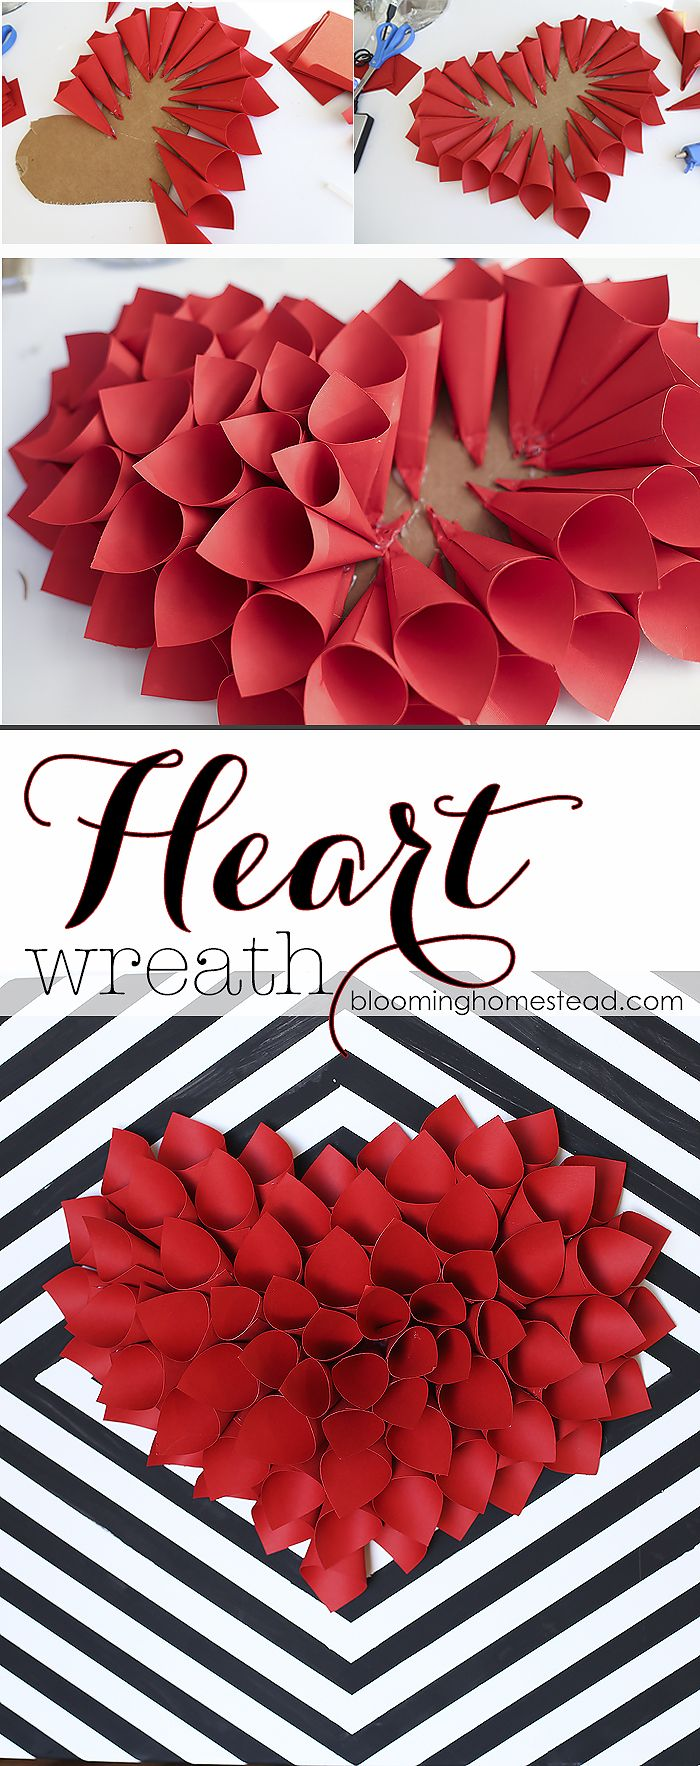 27 easy beautiful diy projects and crafts you should try diy projects and crafts diy paper heart wreath blooming homestead c0bae657b877829c0963f8c2f6171359 solutioingenieria